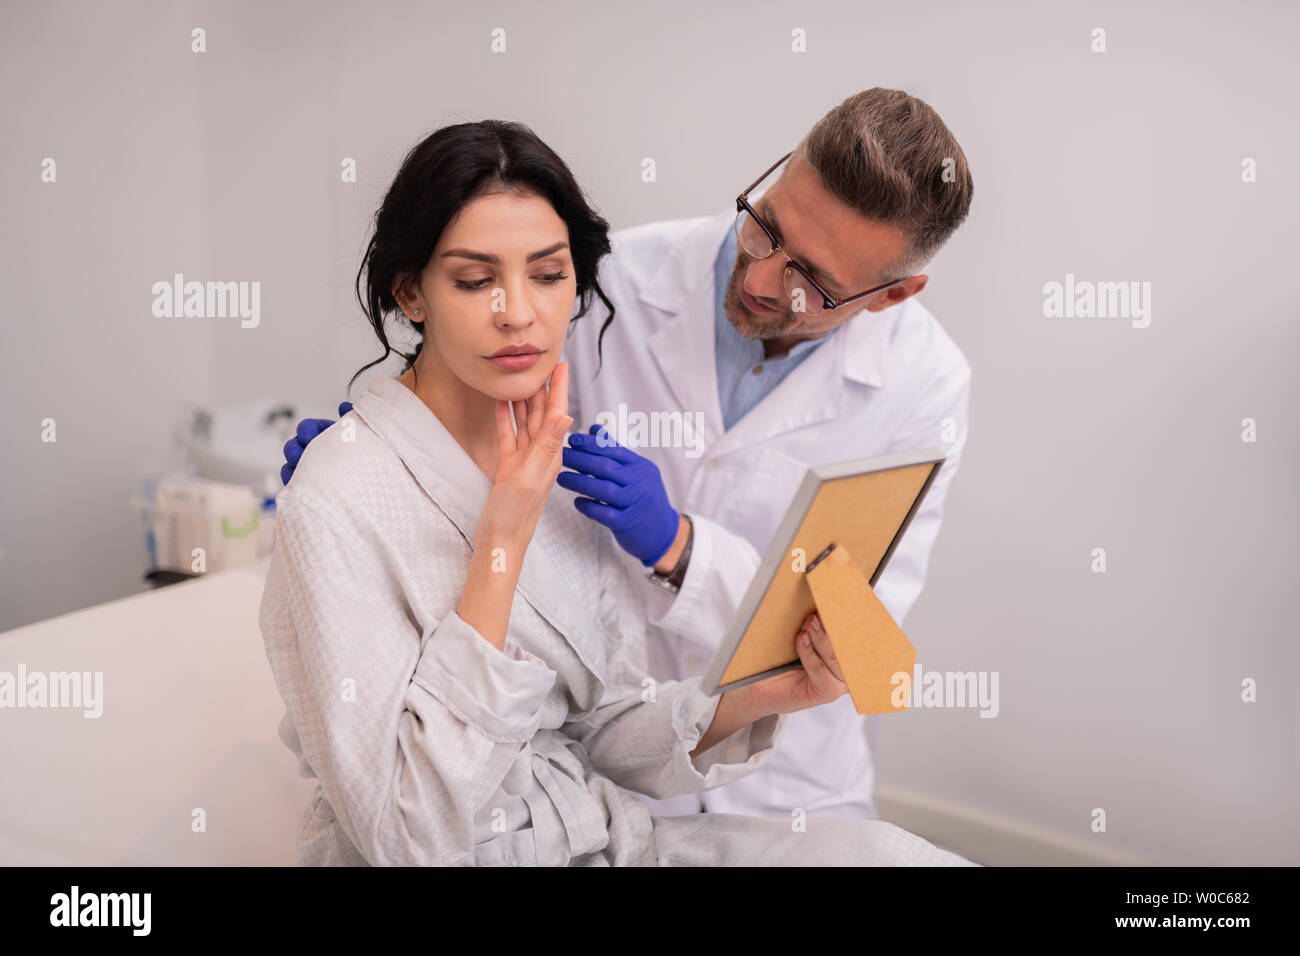 Woman looking into mirror after anti-aging procedures - Stock Image